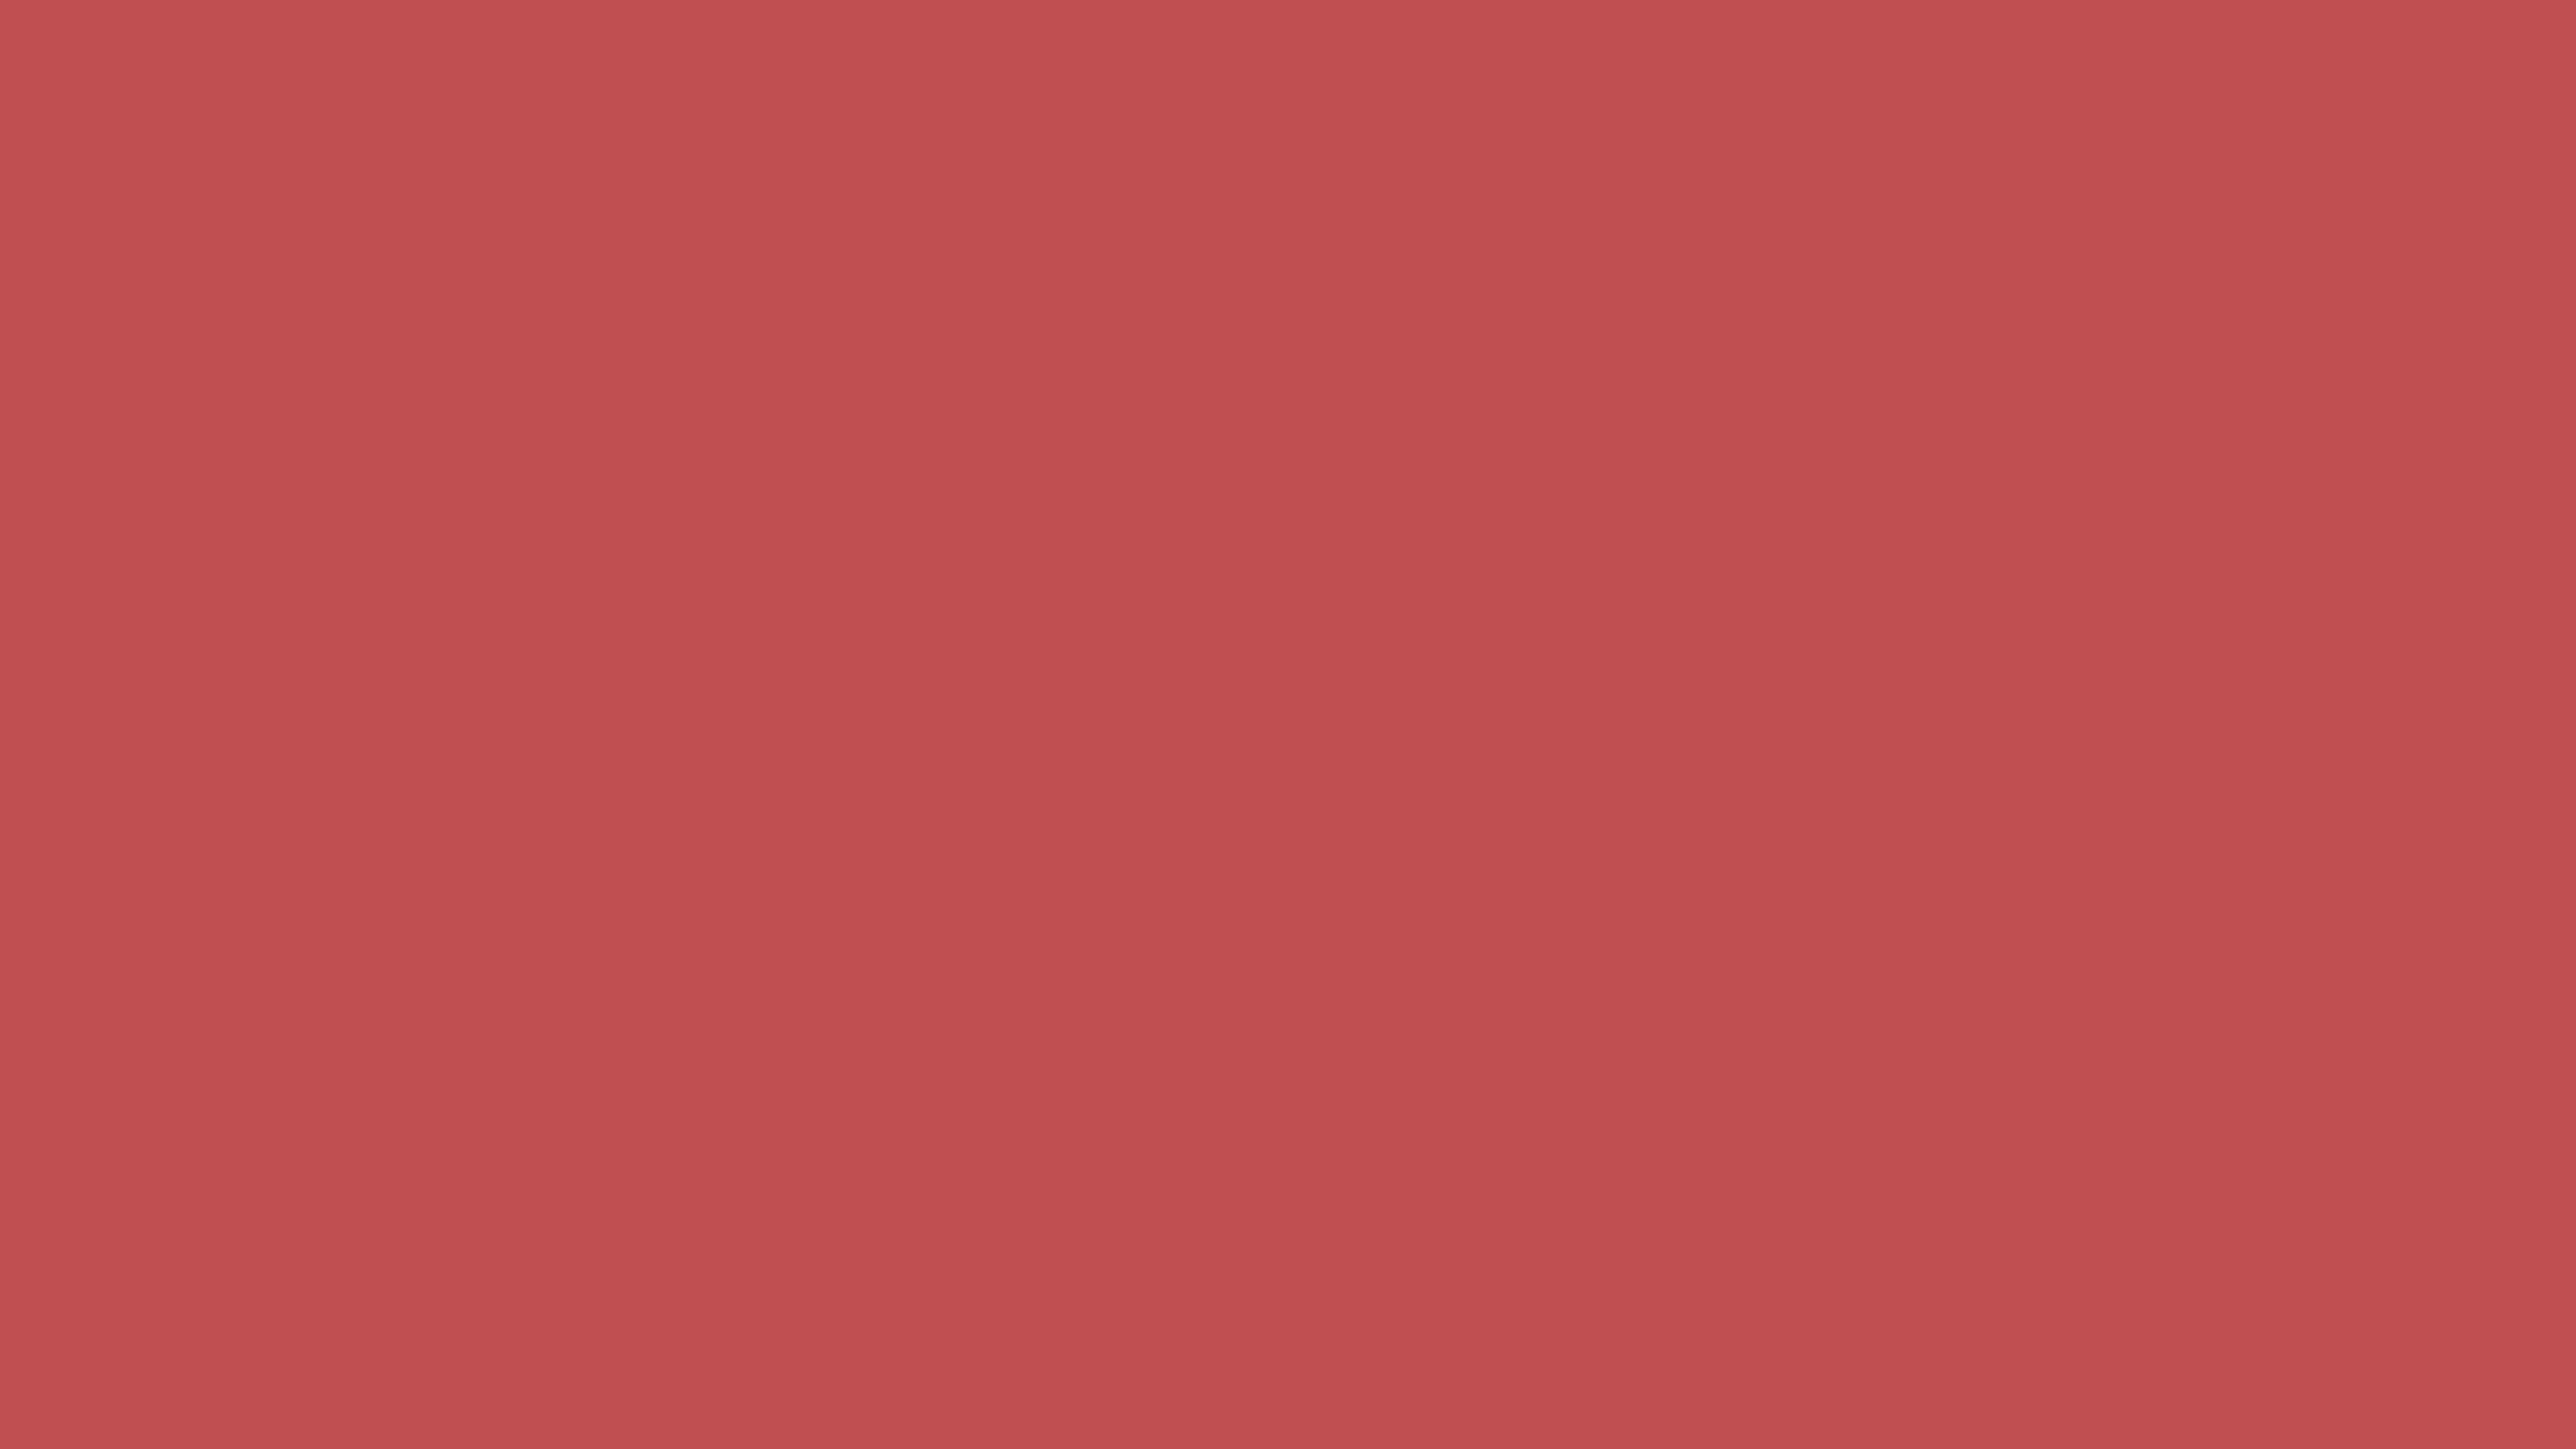 5120x2880 Bittersweet Shimmer Solid Color Background